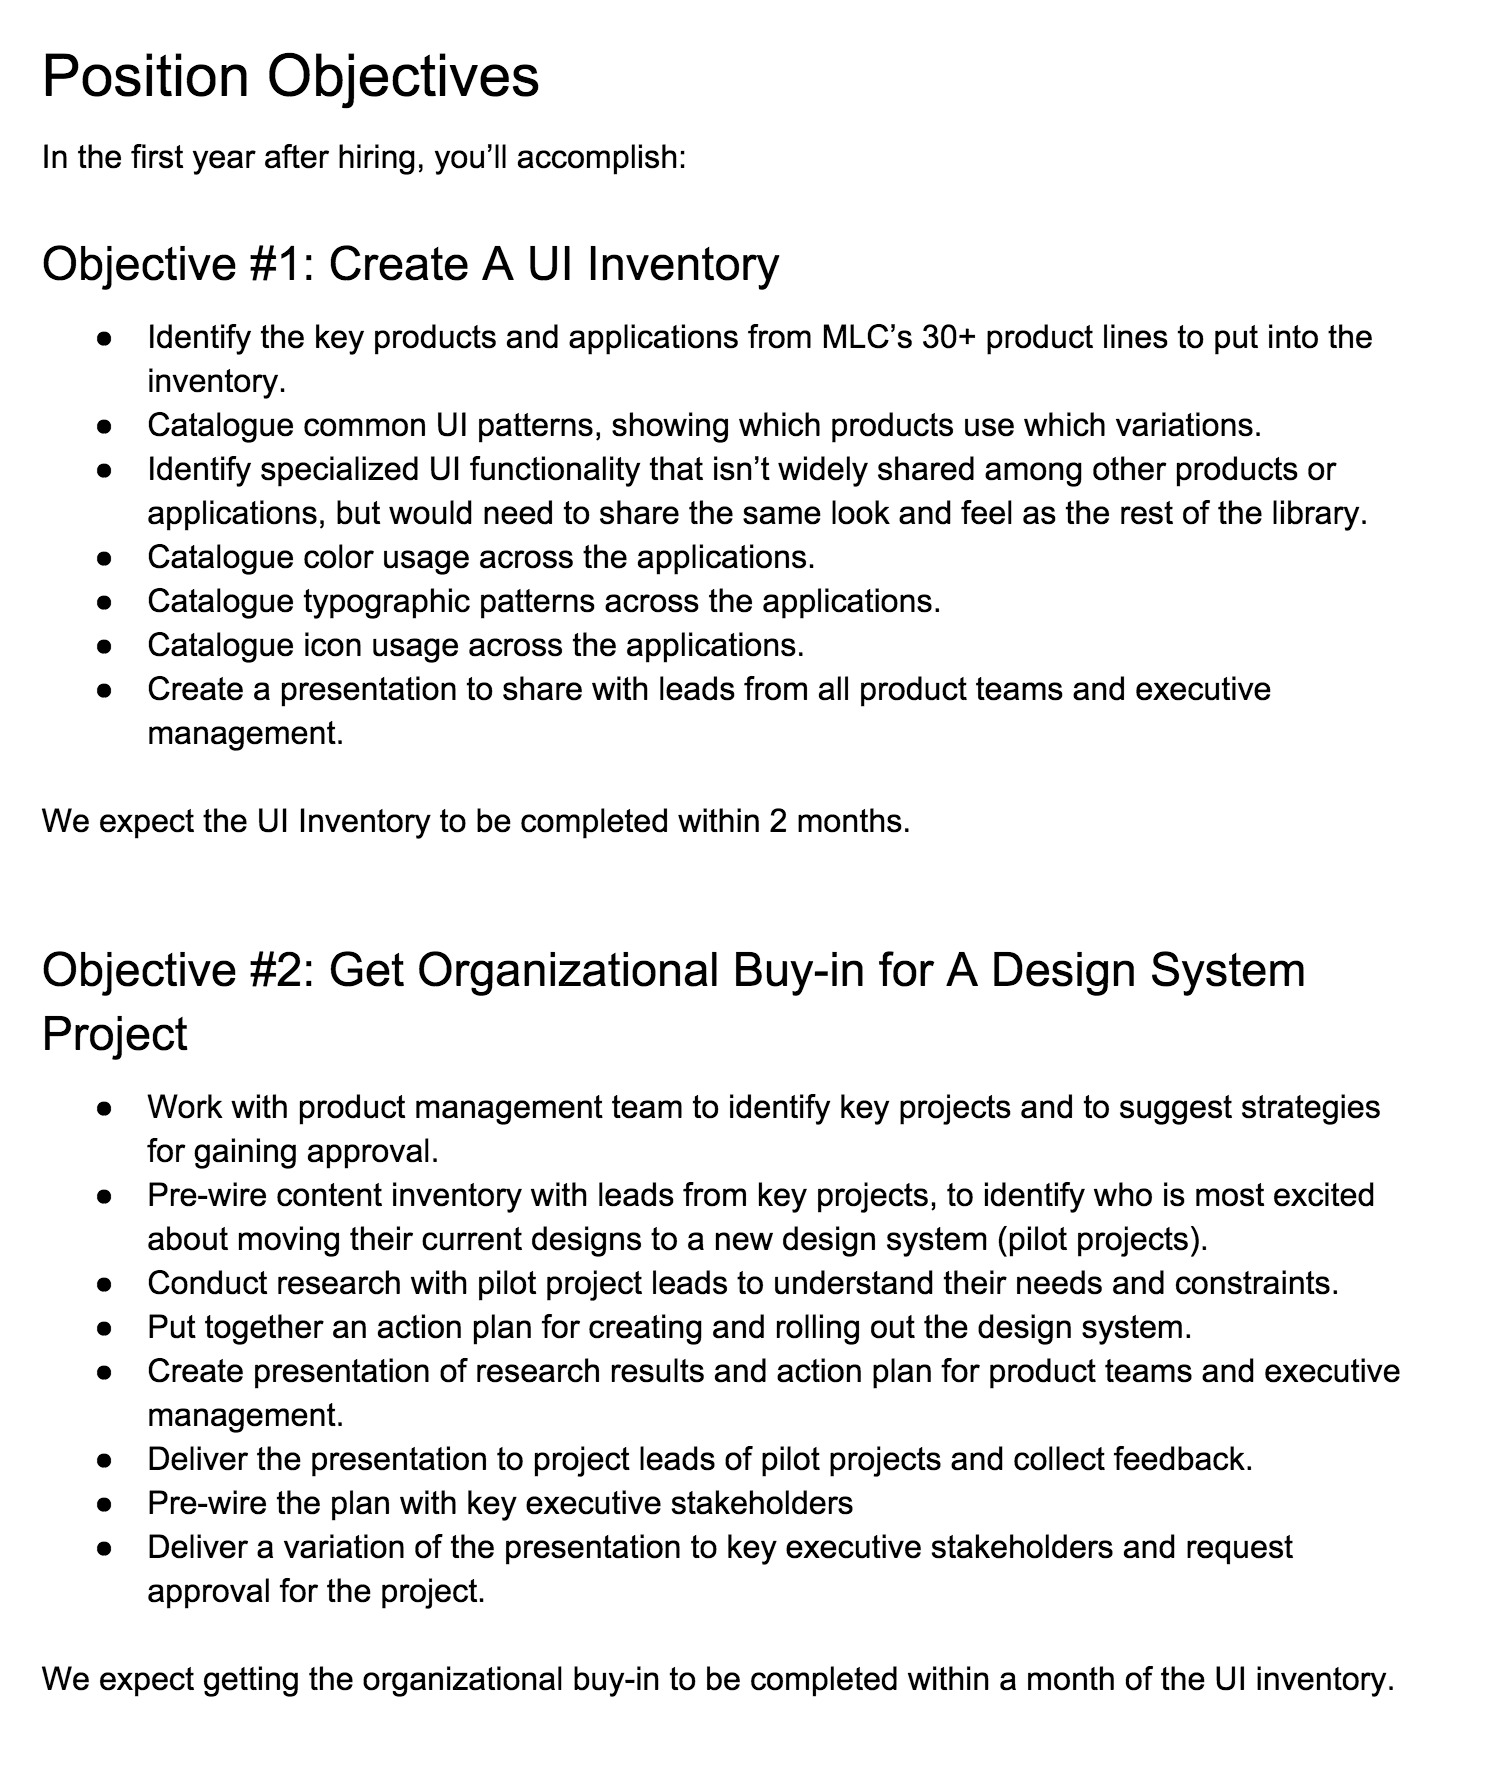 An image of Position Objectives with detailed bullets for Objective #1: Creat A UI Inventory and Objective #2: Get Organizational Buy-in for A Design System Project as well as a timeline for each of these objectives to be completed by the new hire.